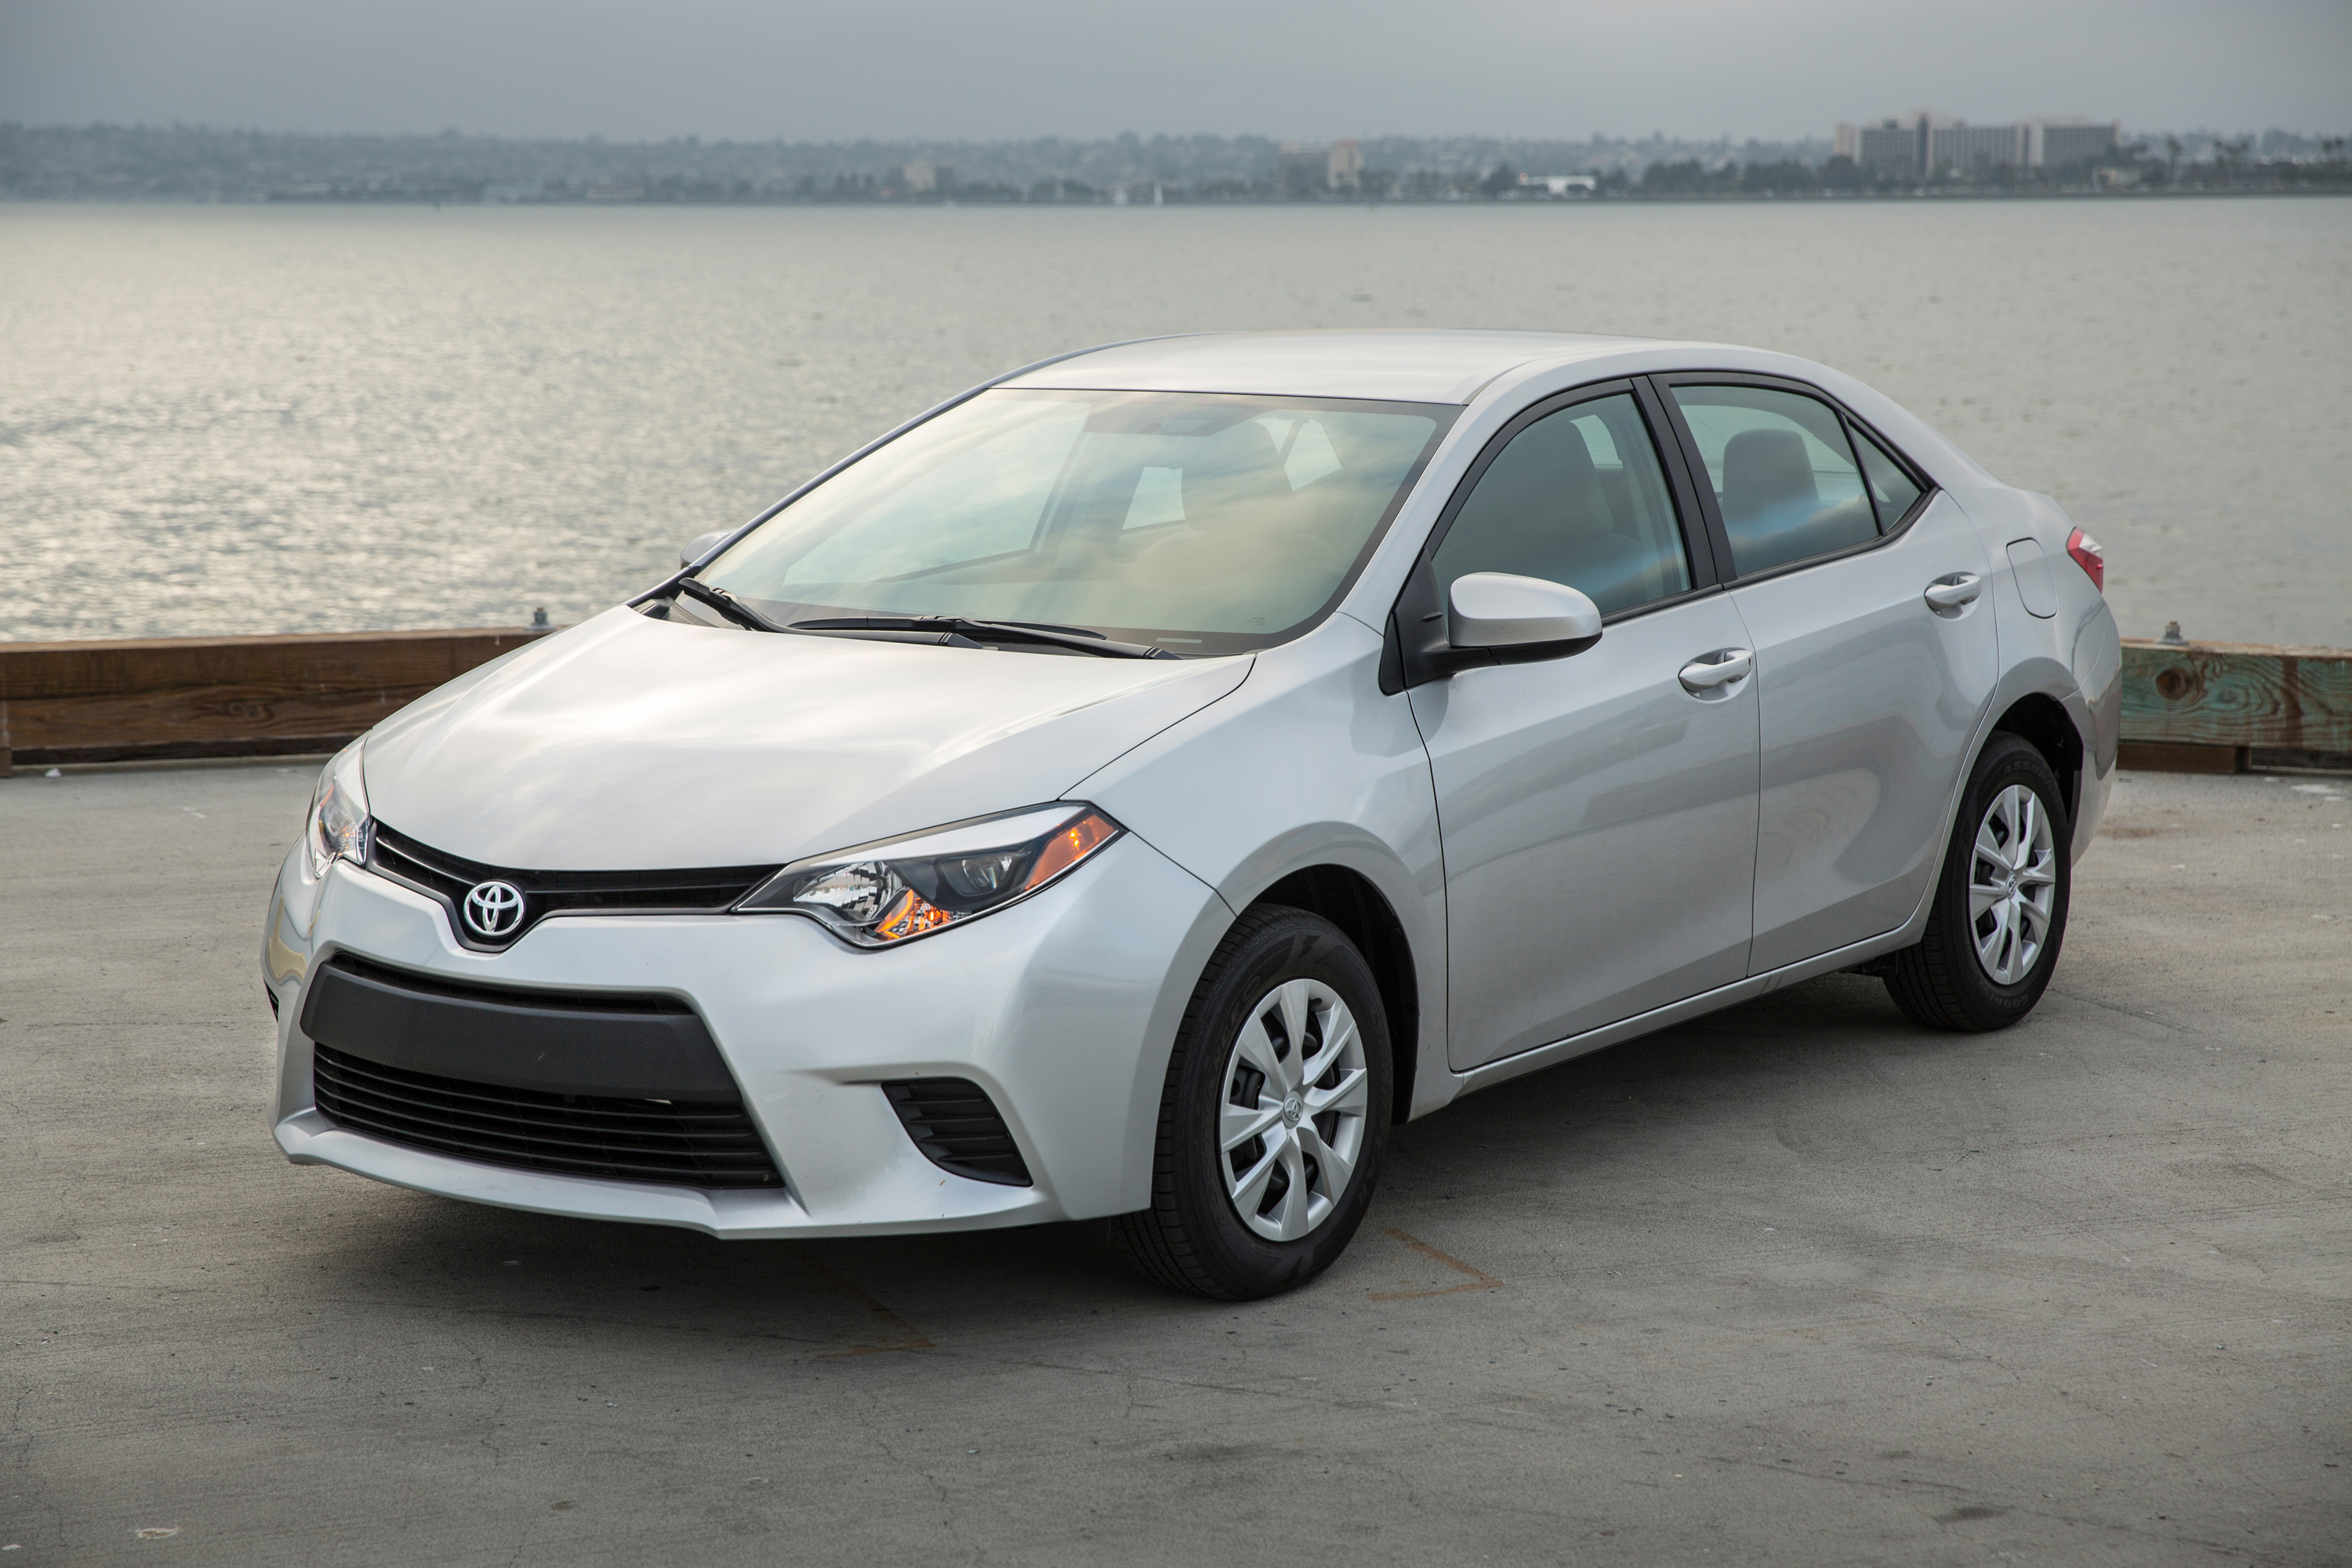 2015 Toyota Corolla Styling Review - The Car Connection